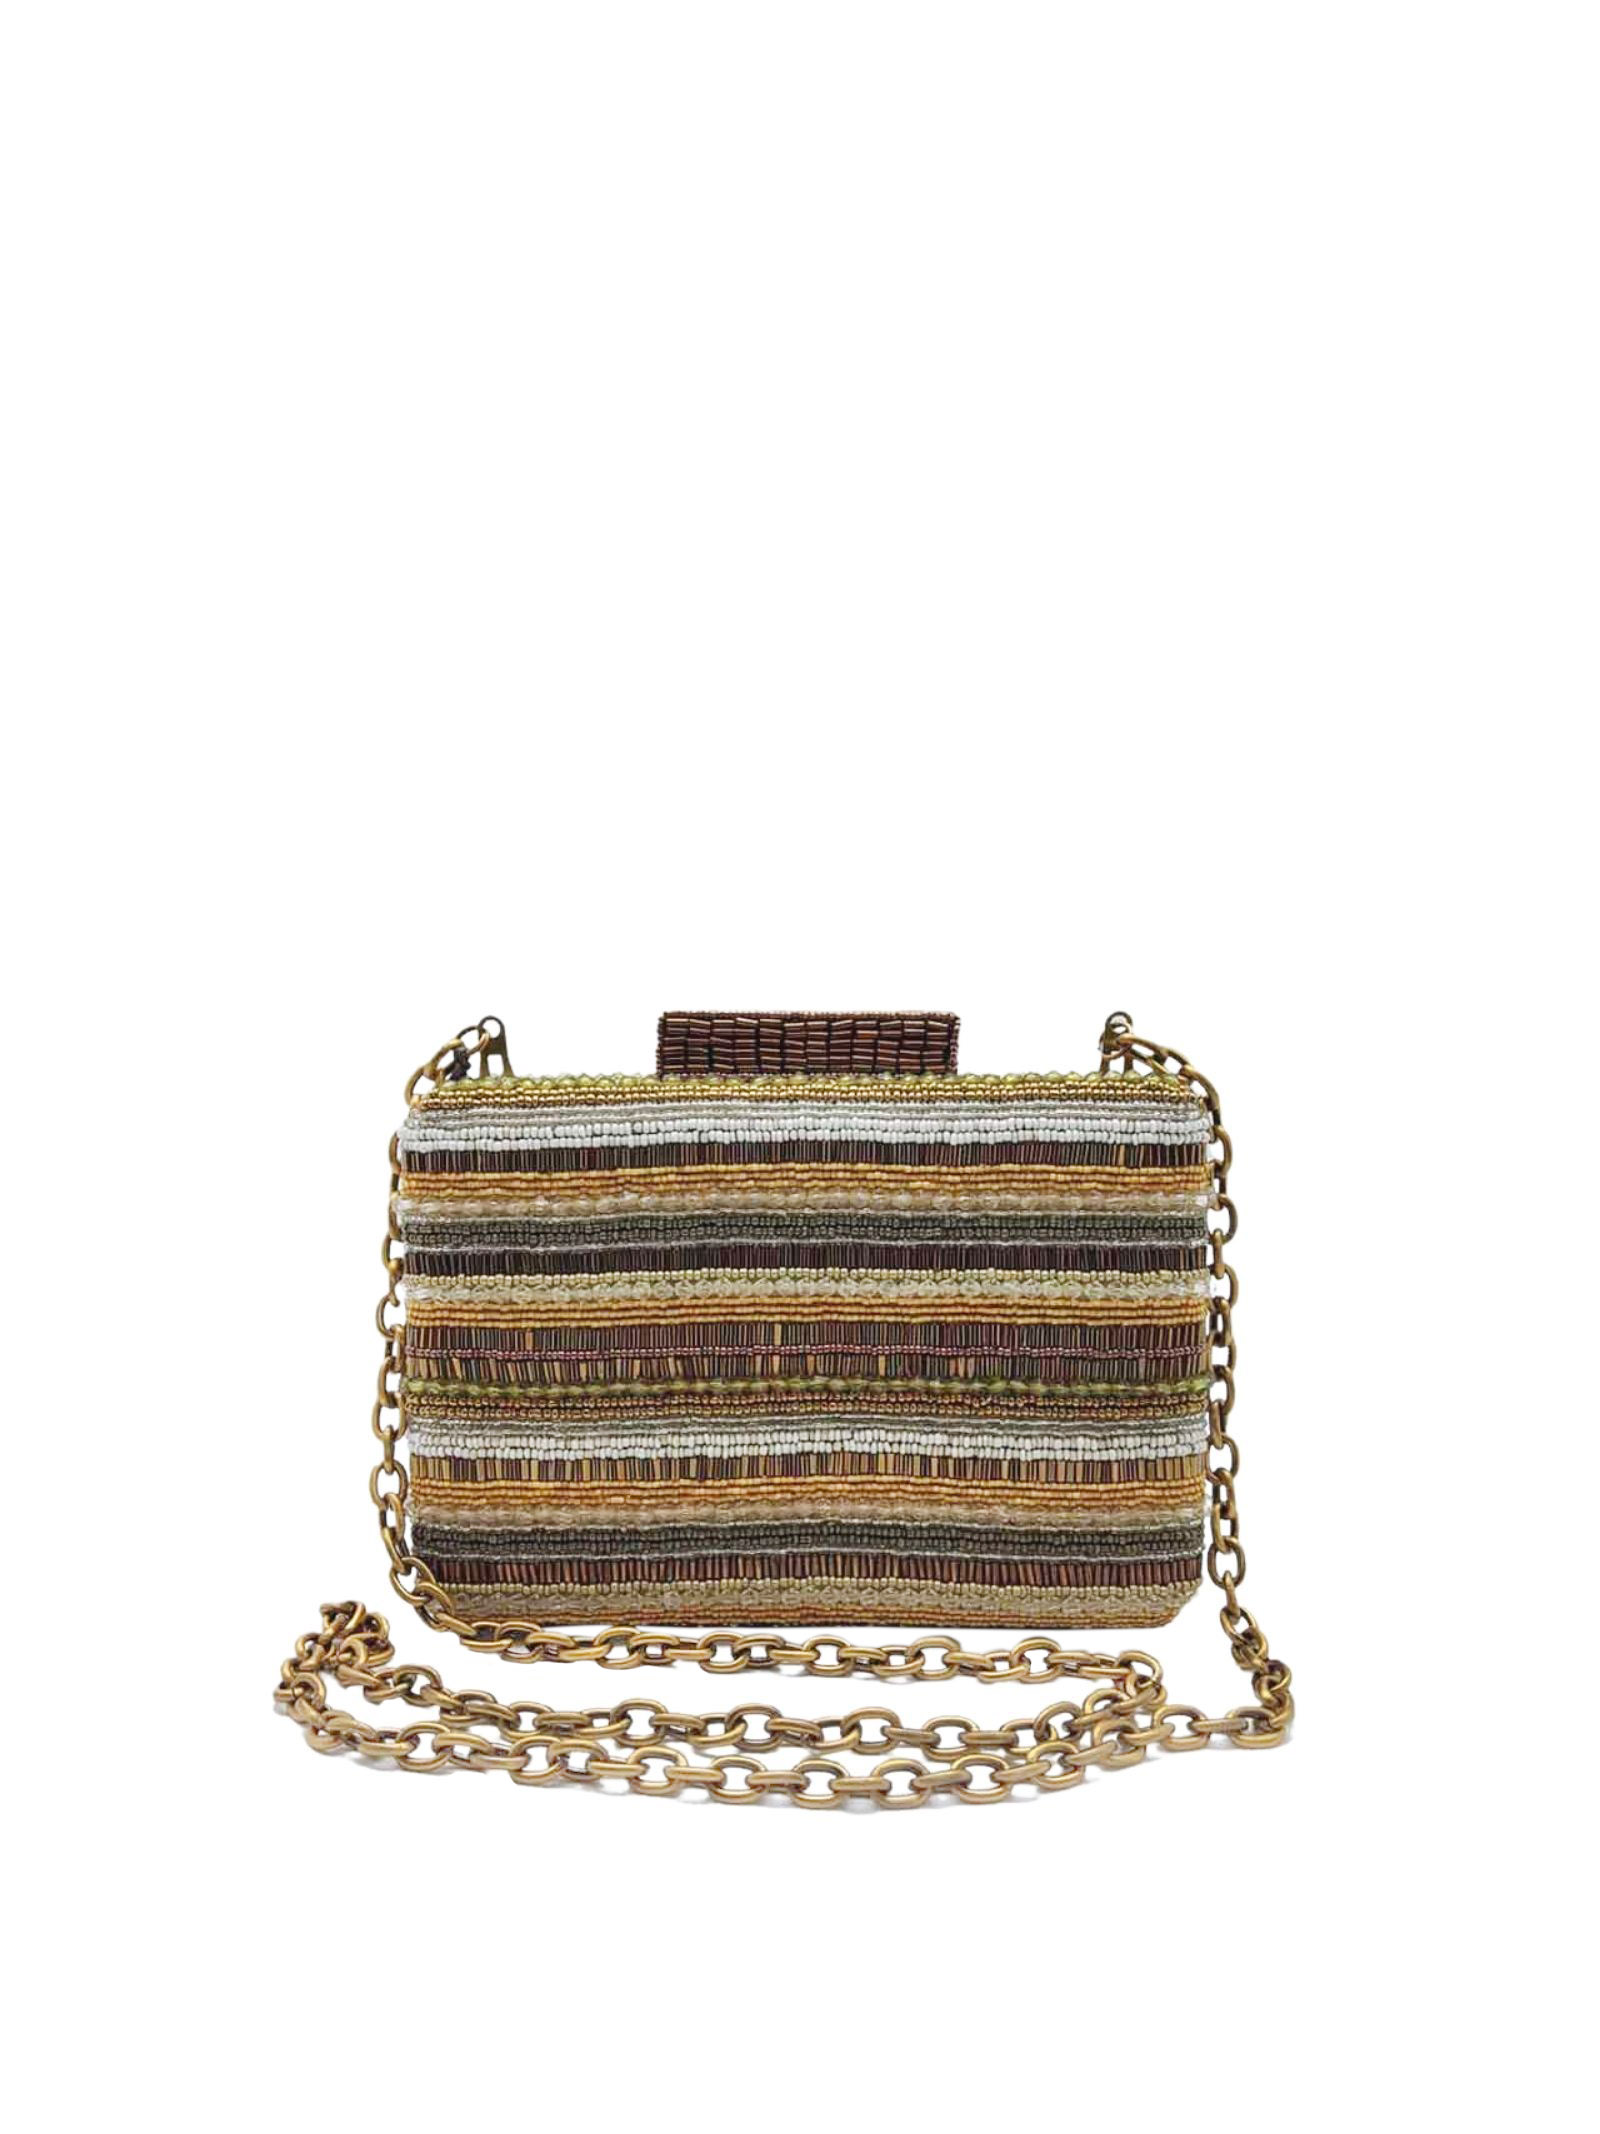 Woman Clutch Bag with Removable Chain Shoulder Strap Clutch Beads Stripes Natural Multicolor Maliparmi | Bags and backpacks | BP00079076611B99